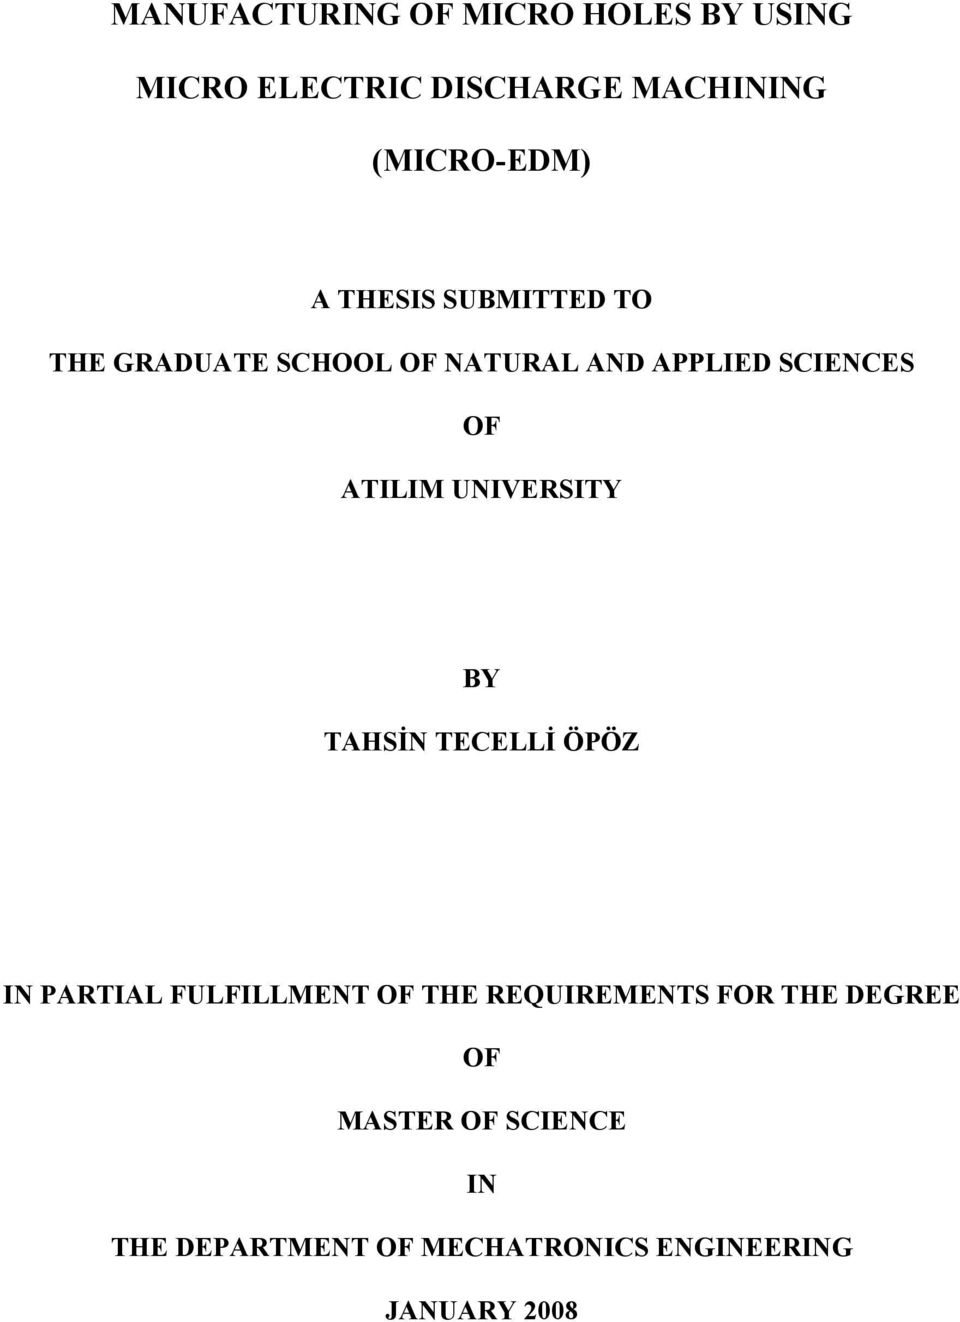 UNIVERSITY BY TAHSİN TECELLİ ÖPÖZ IN PARTIAL FULFILLMENT OF THE REQUIREMENTS FOR THE